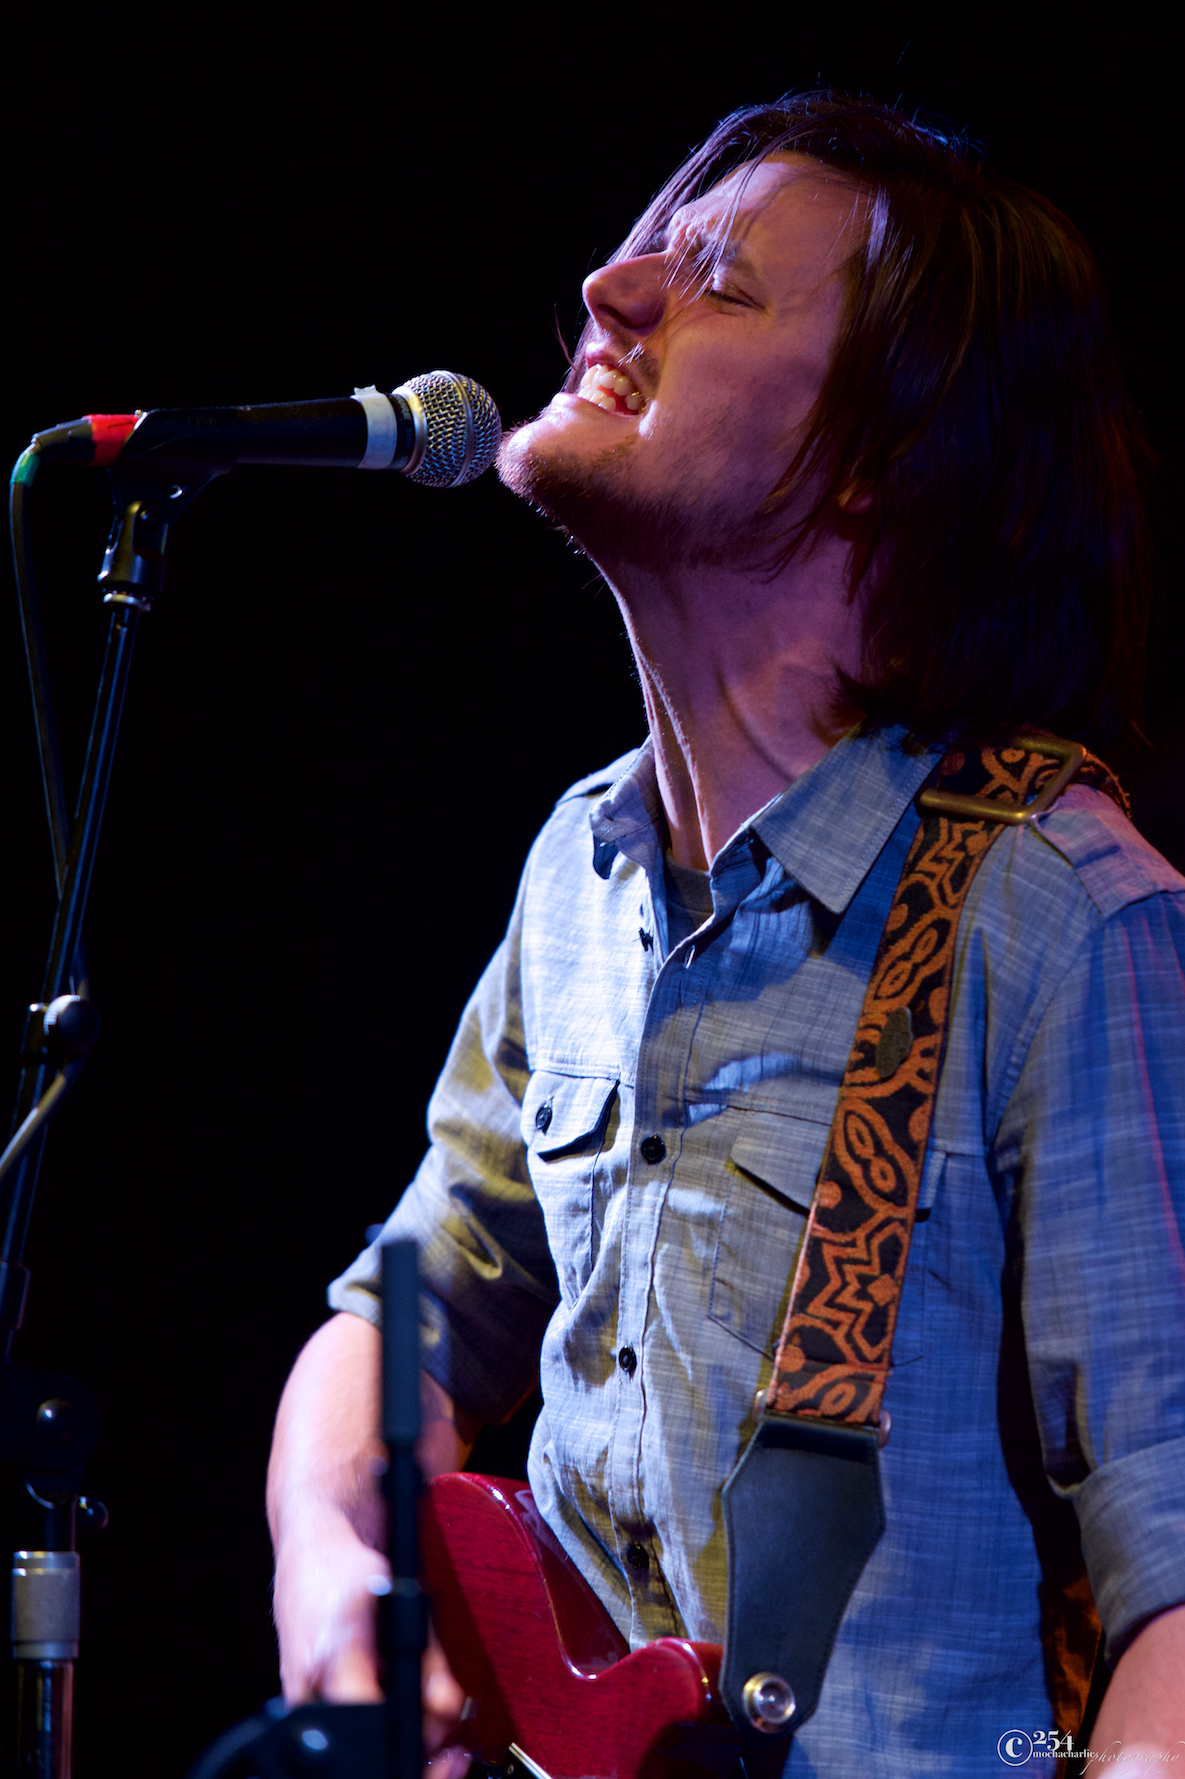 TJ Grant (If Bears Were Bees) at The Tractor Tavern (Photo by Mocha Charlie)